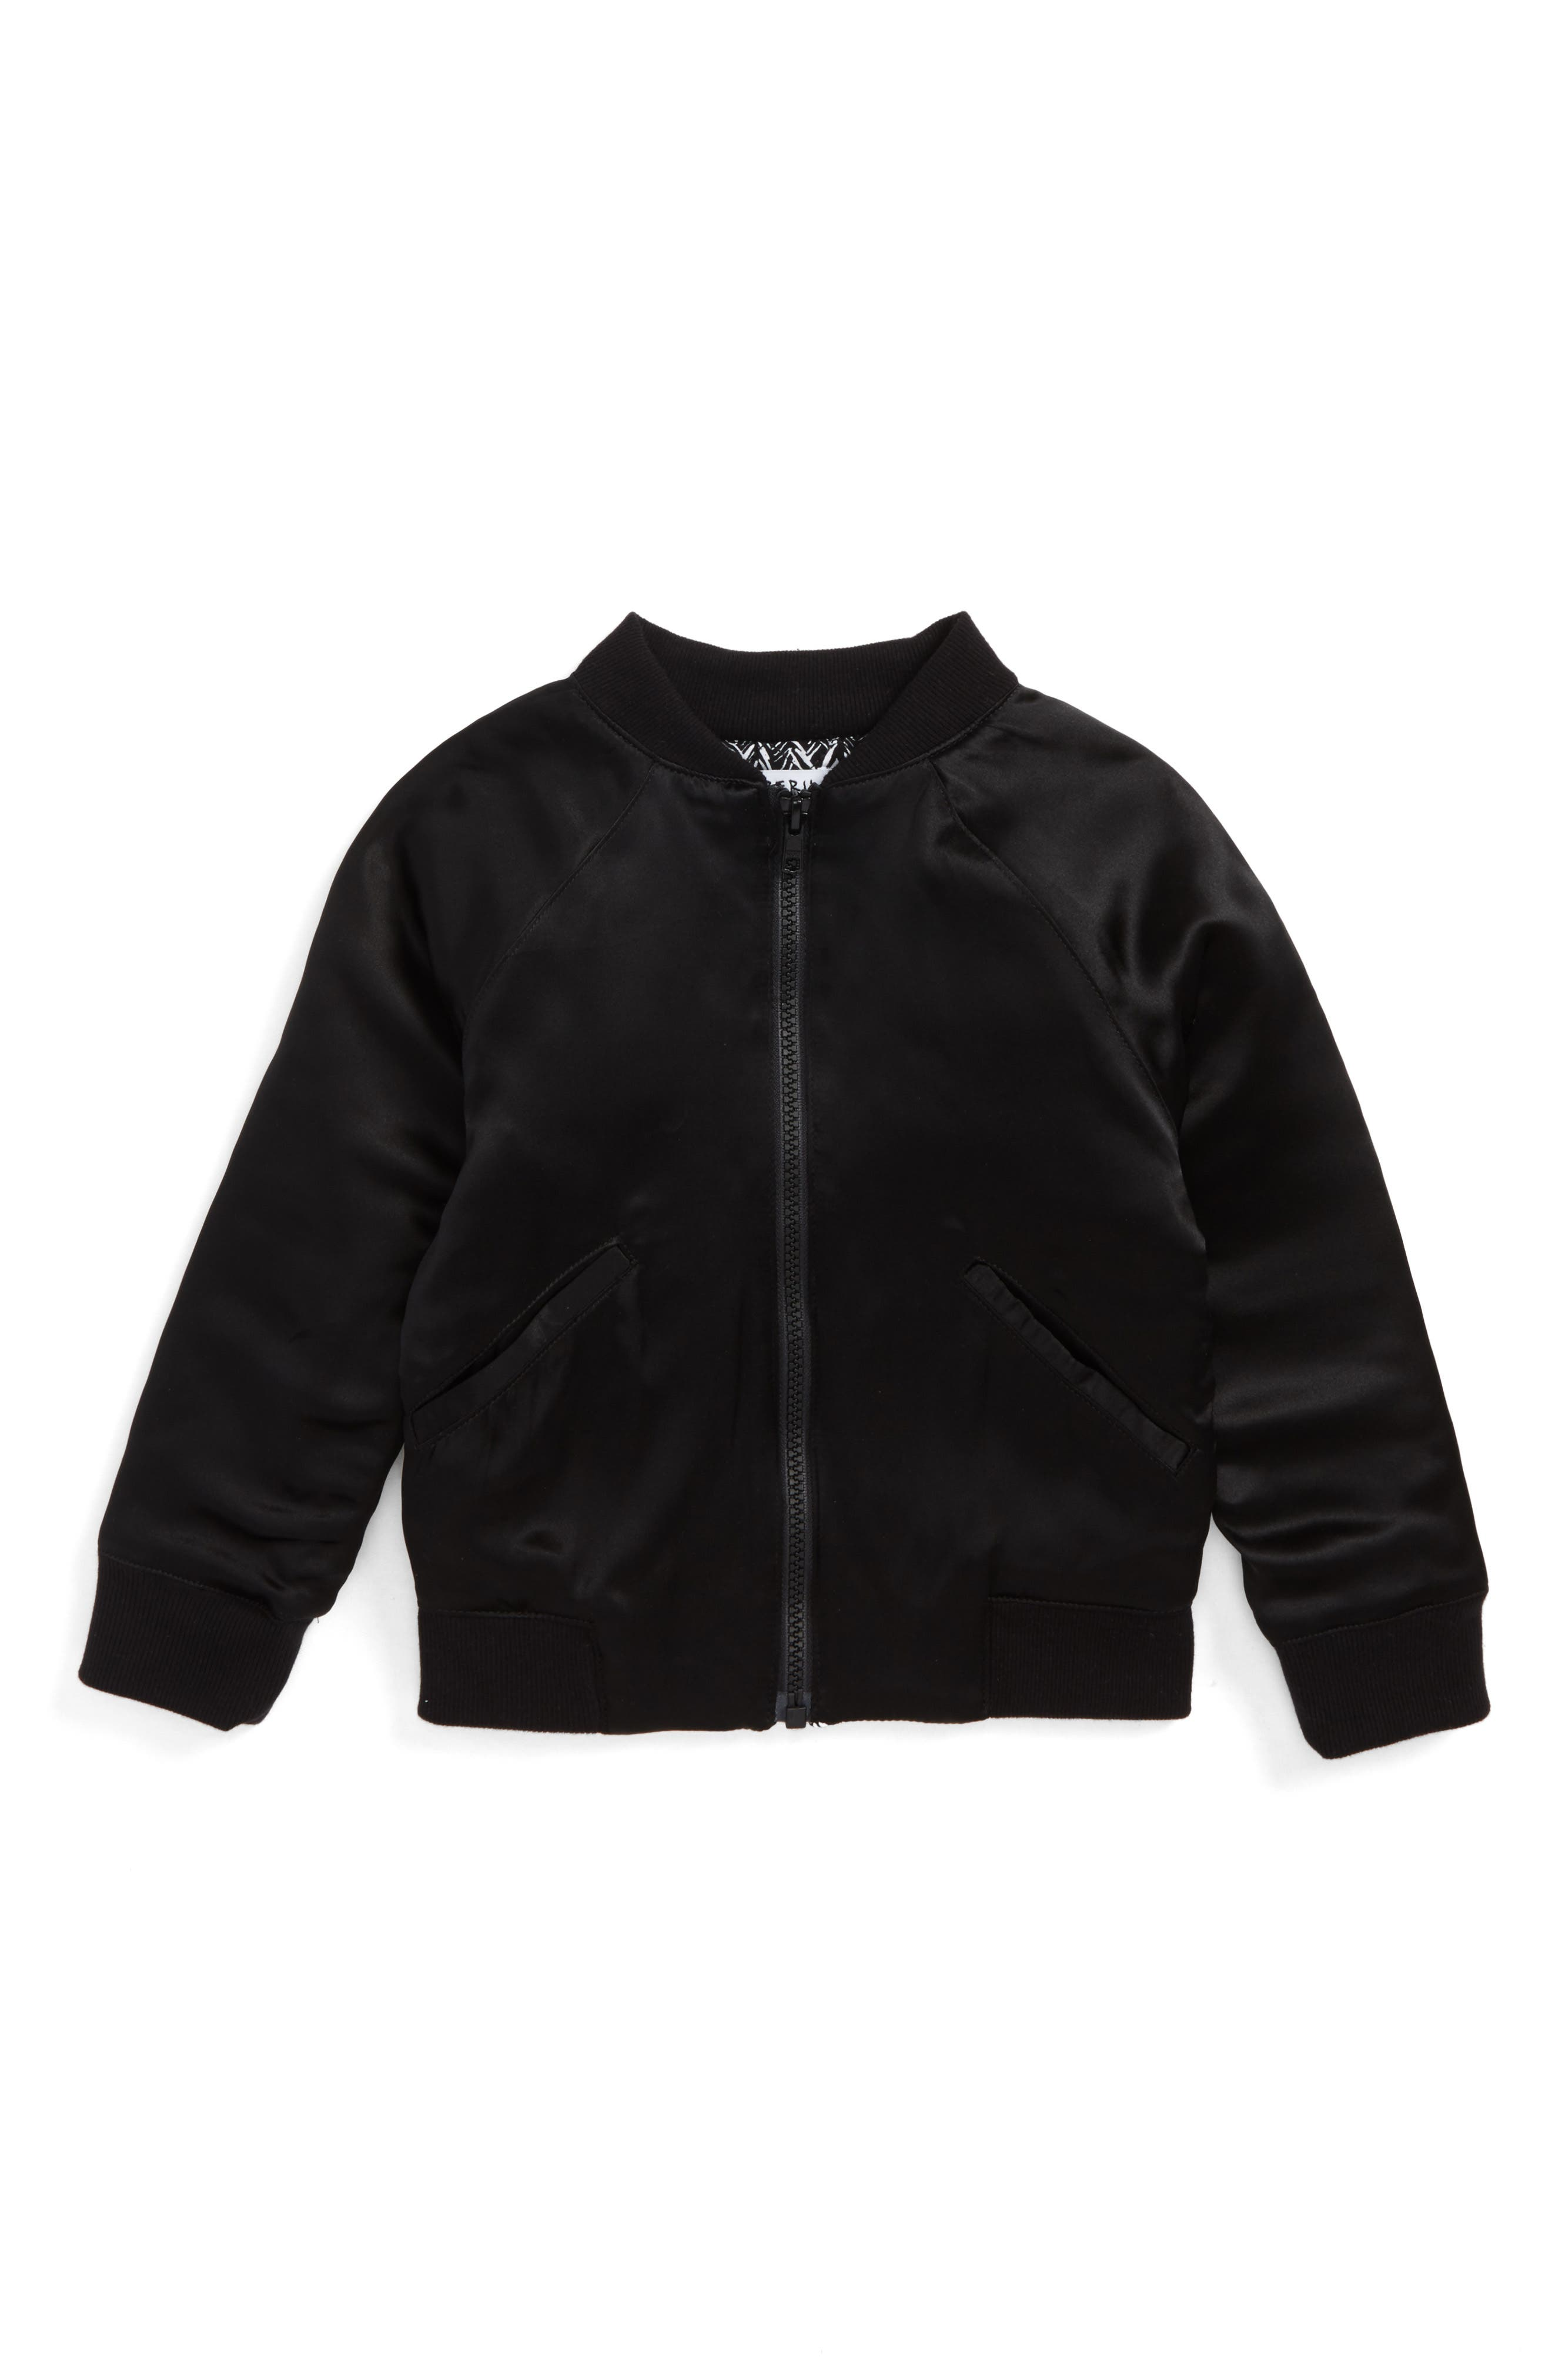 BERU Tristan Silk Bomber Jacket (Toddler Boys & Little Boys)